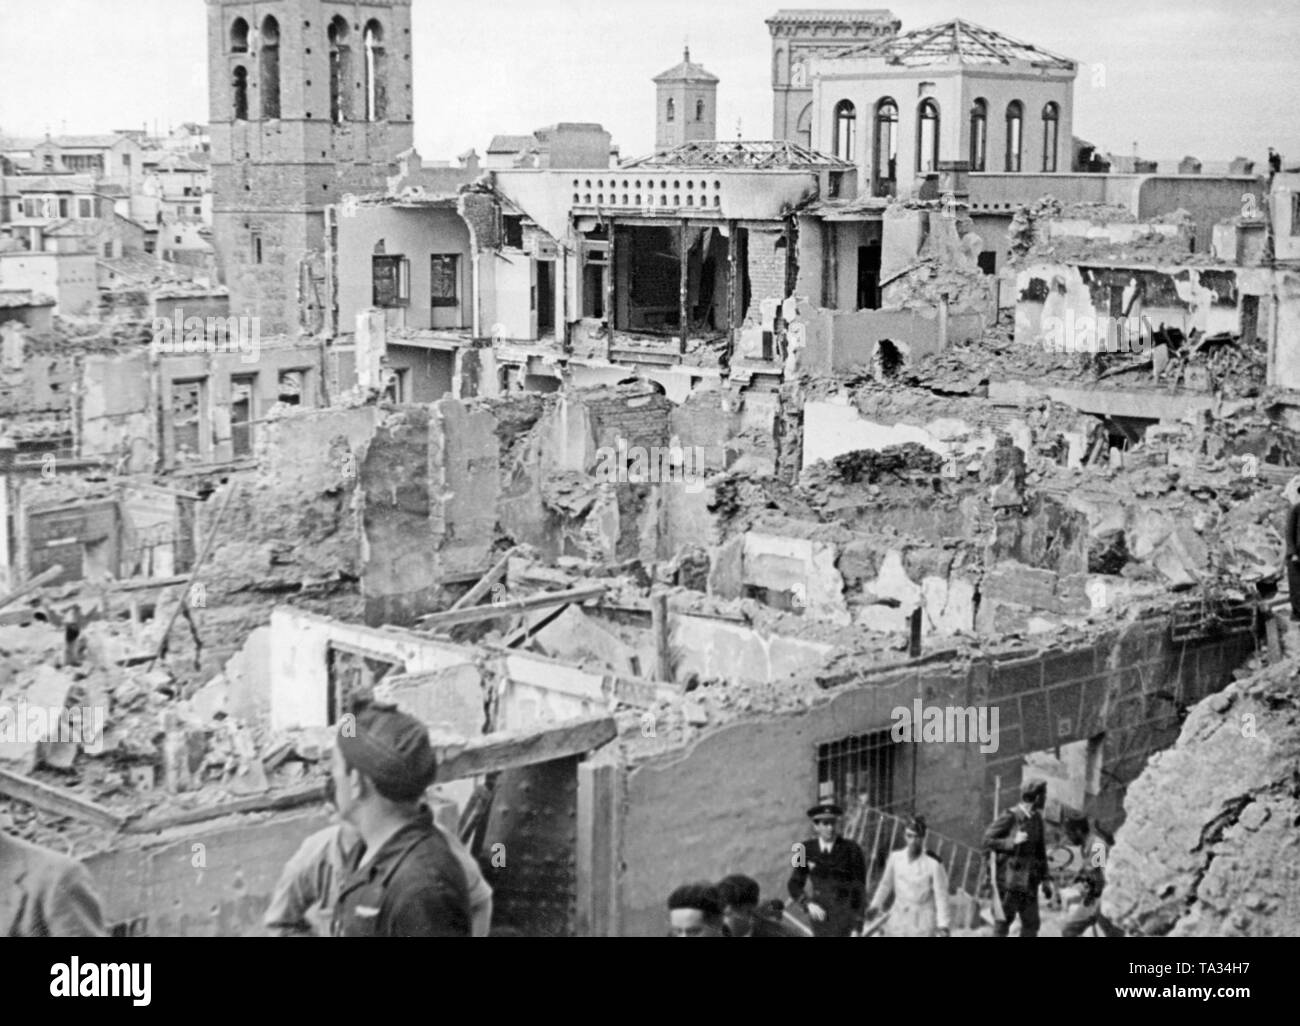 Spanish soldiers visit the patio of the liberated Alcazar of Toldeo after its conquest on September 26, 1936. In the background, destroyed houses in the neighbourhood of the fortress. - Stock Image